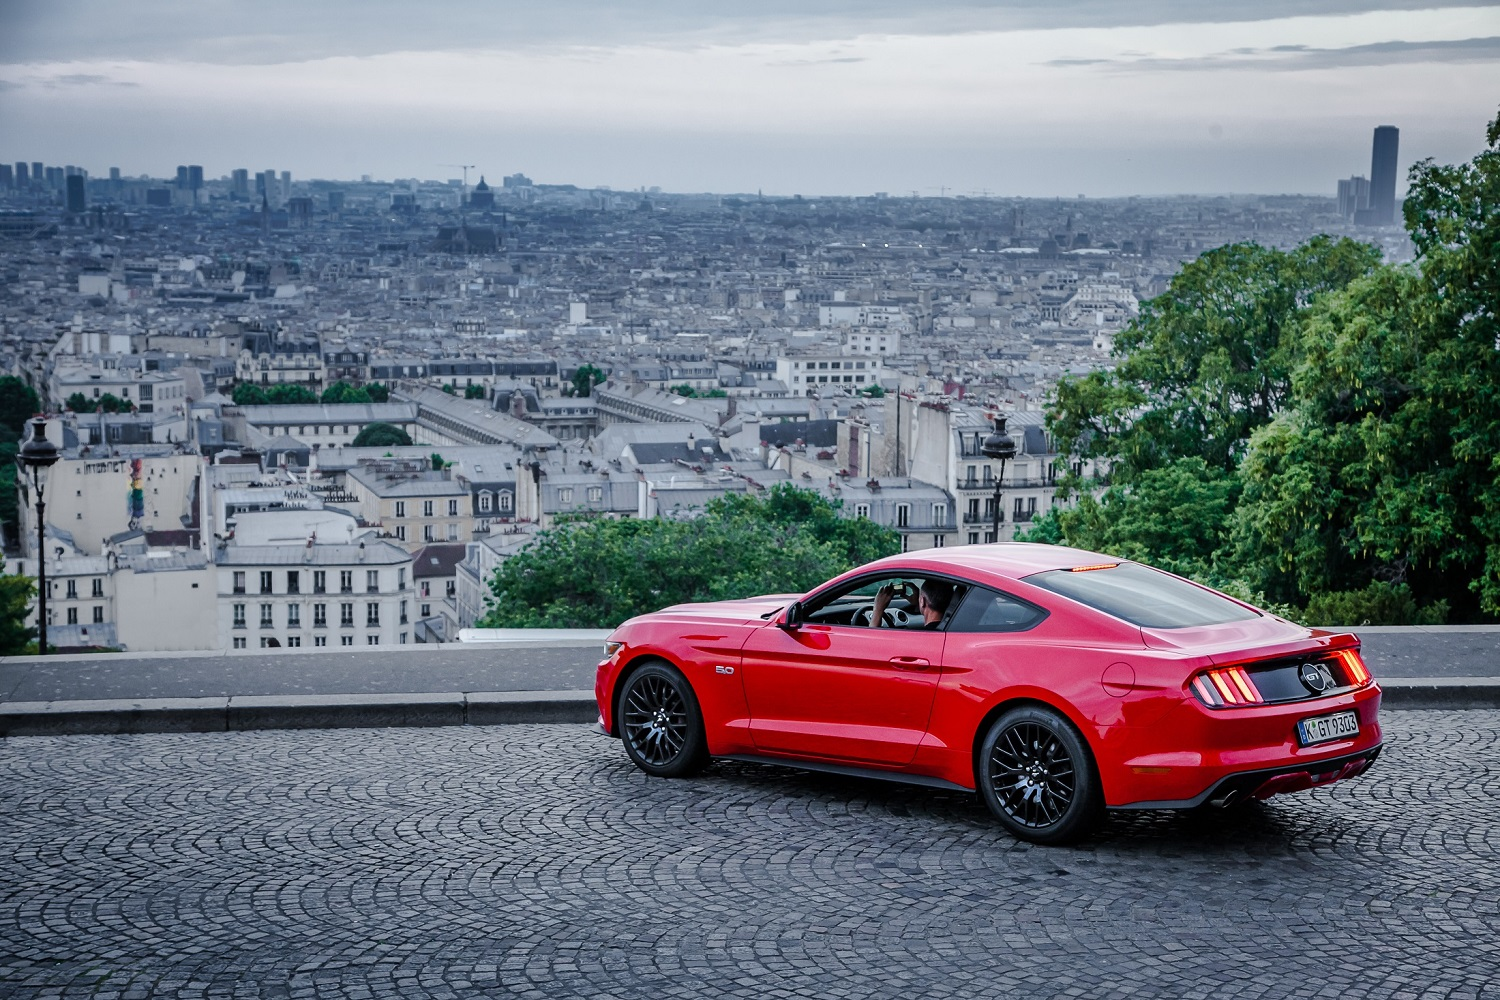 The Best-Selling Sports Coupe in 2015 Was the Ford Mustang ...